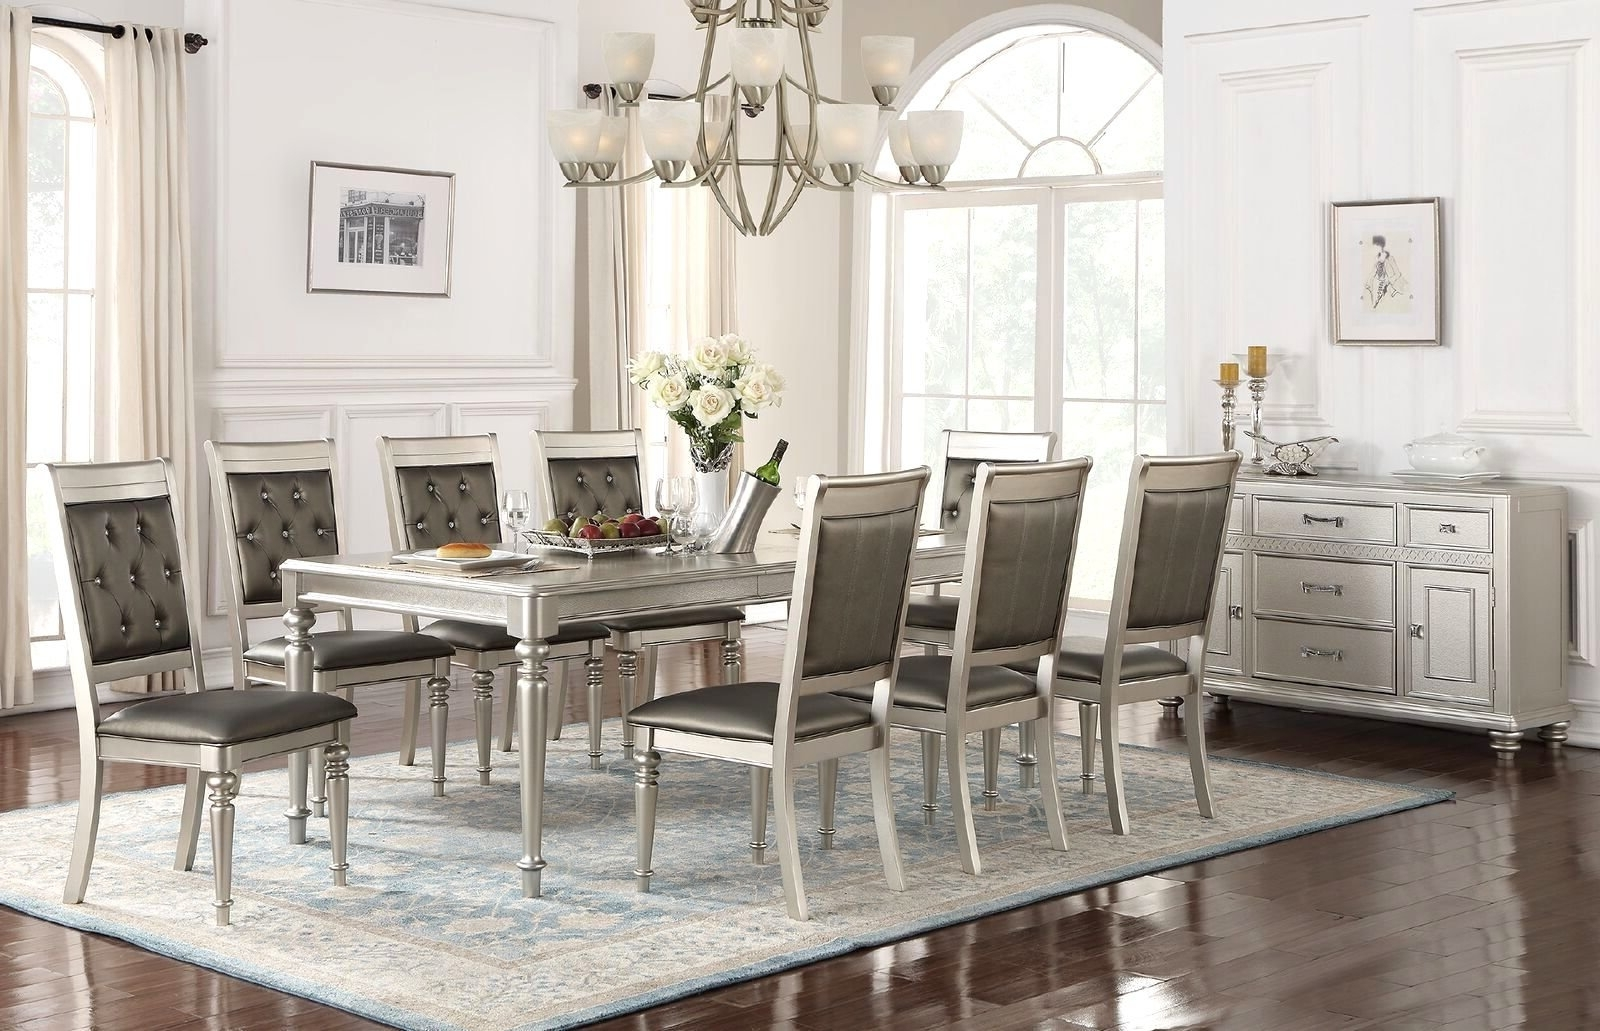 Rocco 7 Piece Extension Dining Sets Inside Recent 9 Piece Dining Sets You'll Love (View 19 of 25)